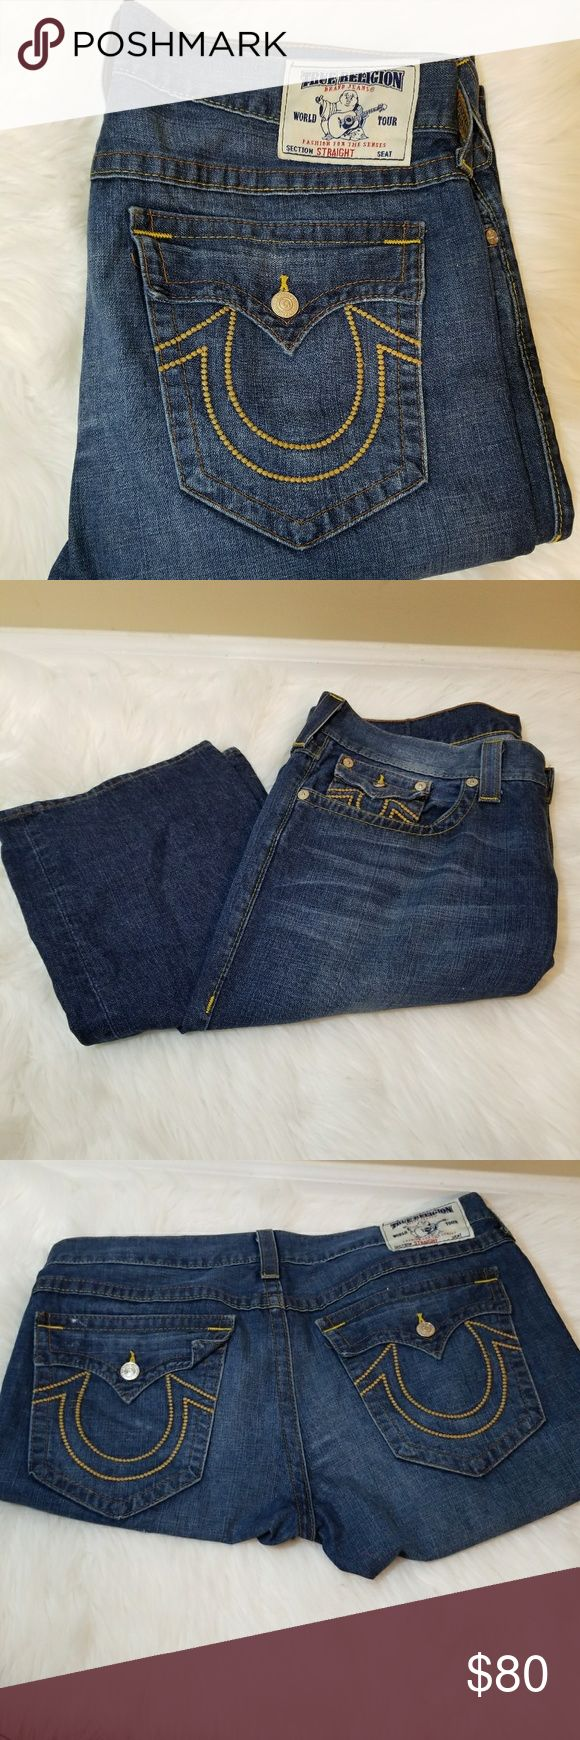 Gently Worn True Religion Jeans True Religion Jeans that are perfect for adding to your collection or starting a new one. Jeans were worn only 2-3 times after purchasing. True Religion Jeans